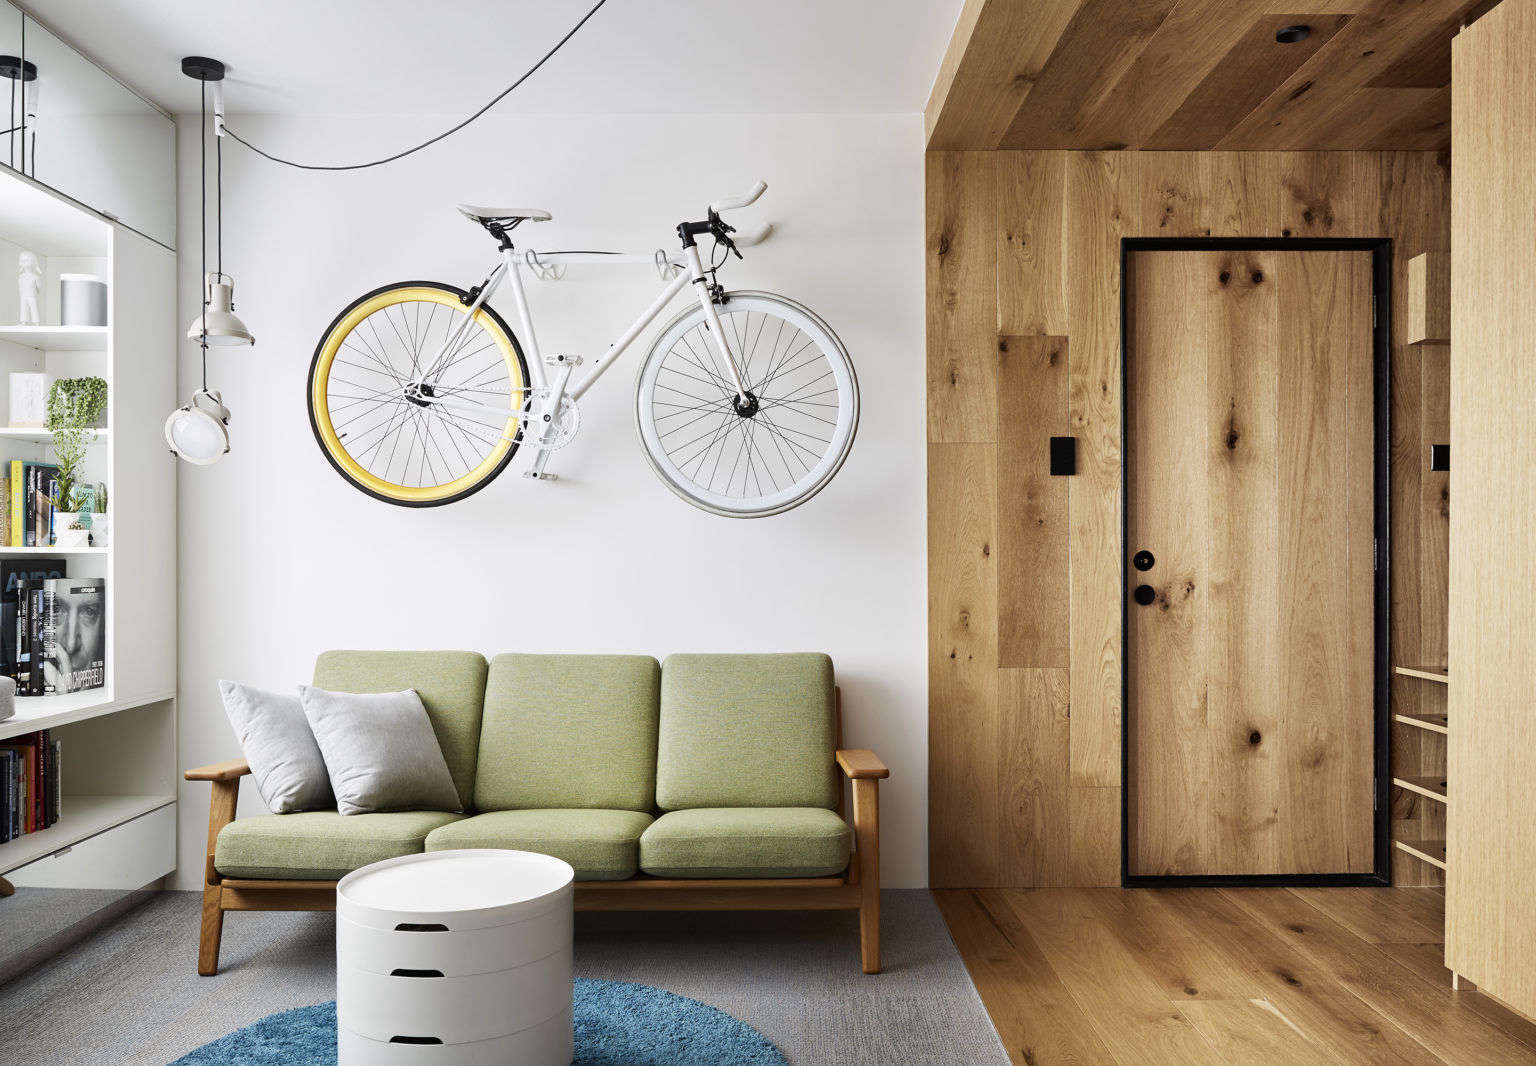 Type St. Apartment in Melbourne Living Room Bike Rack by Tsai Design